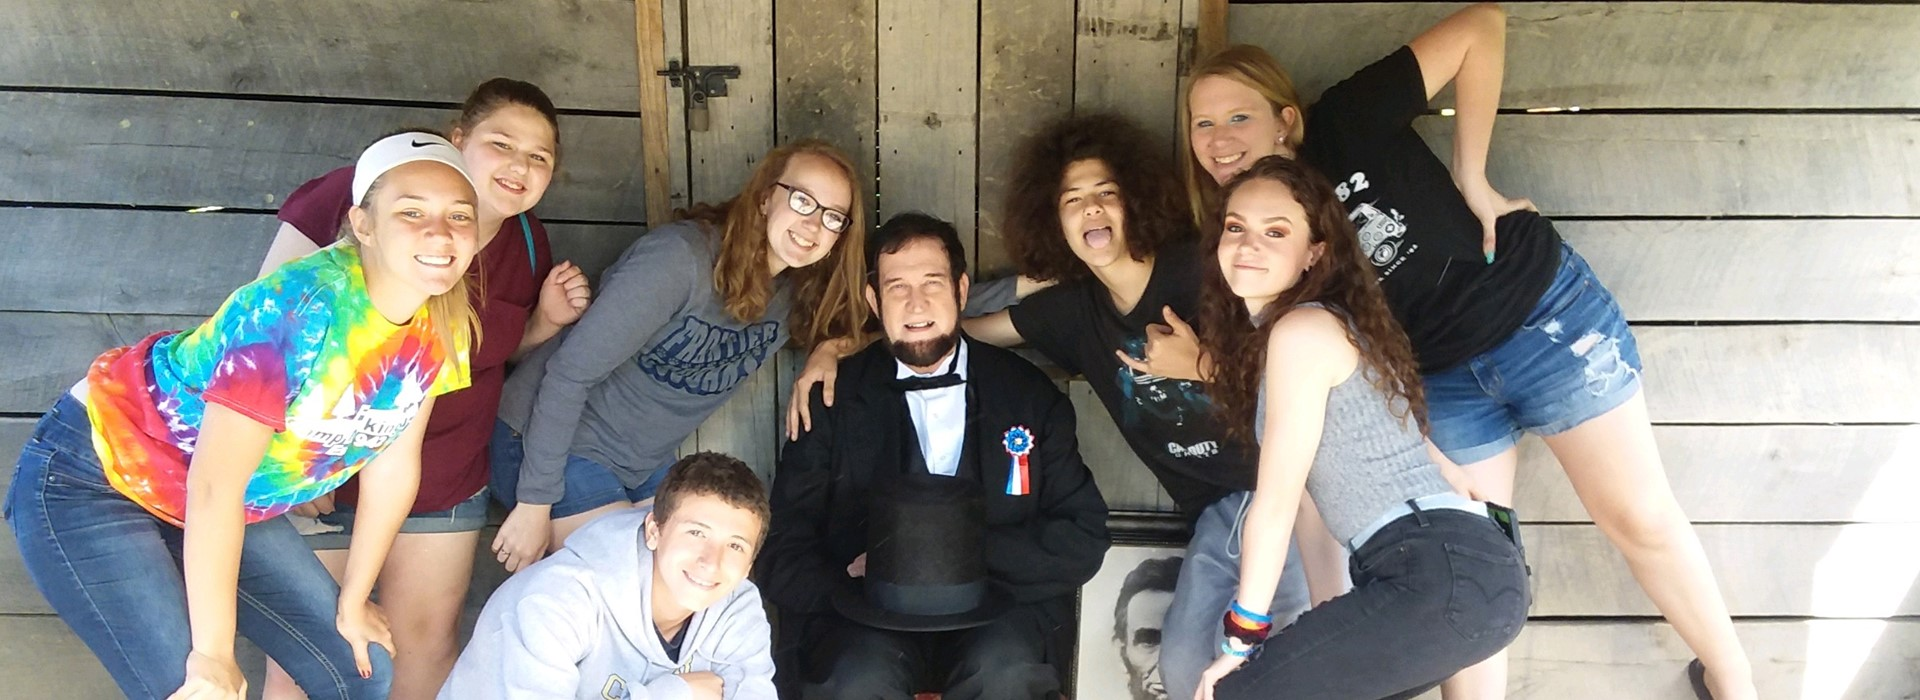 Our eighth graders with Abe Lincoln at Civil War Days